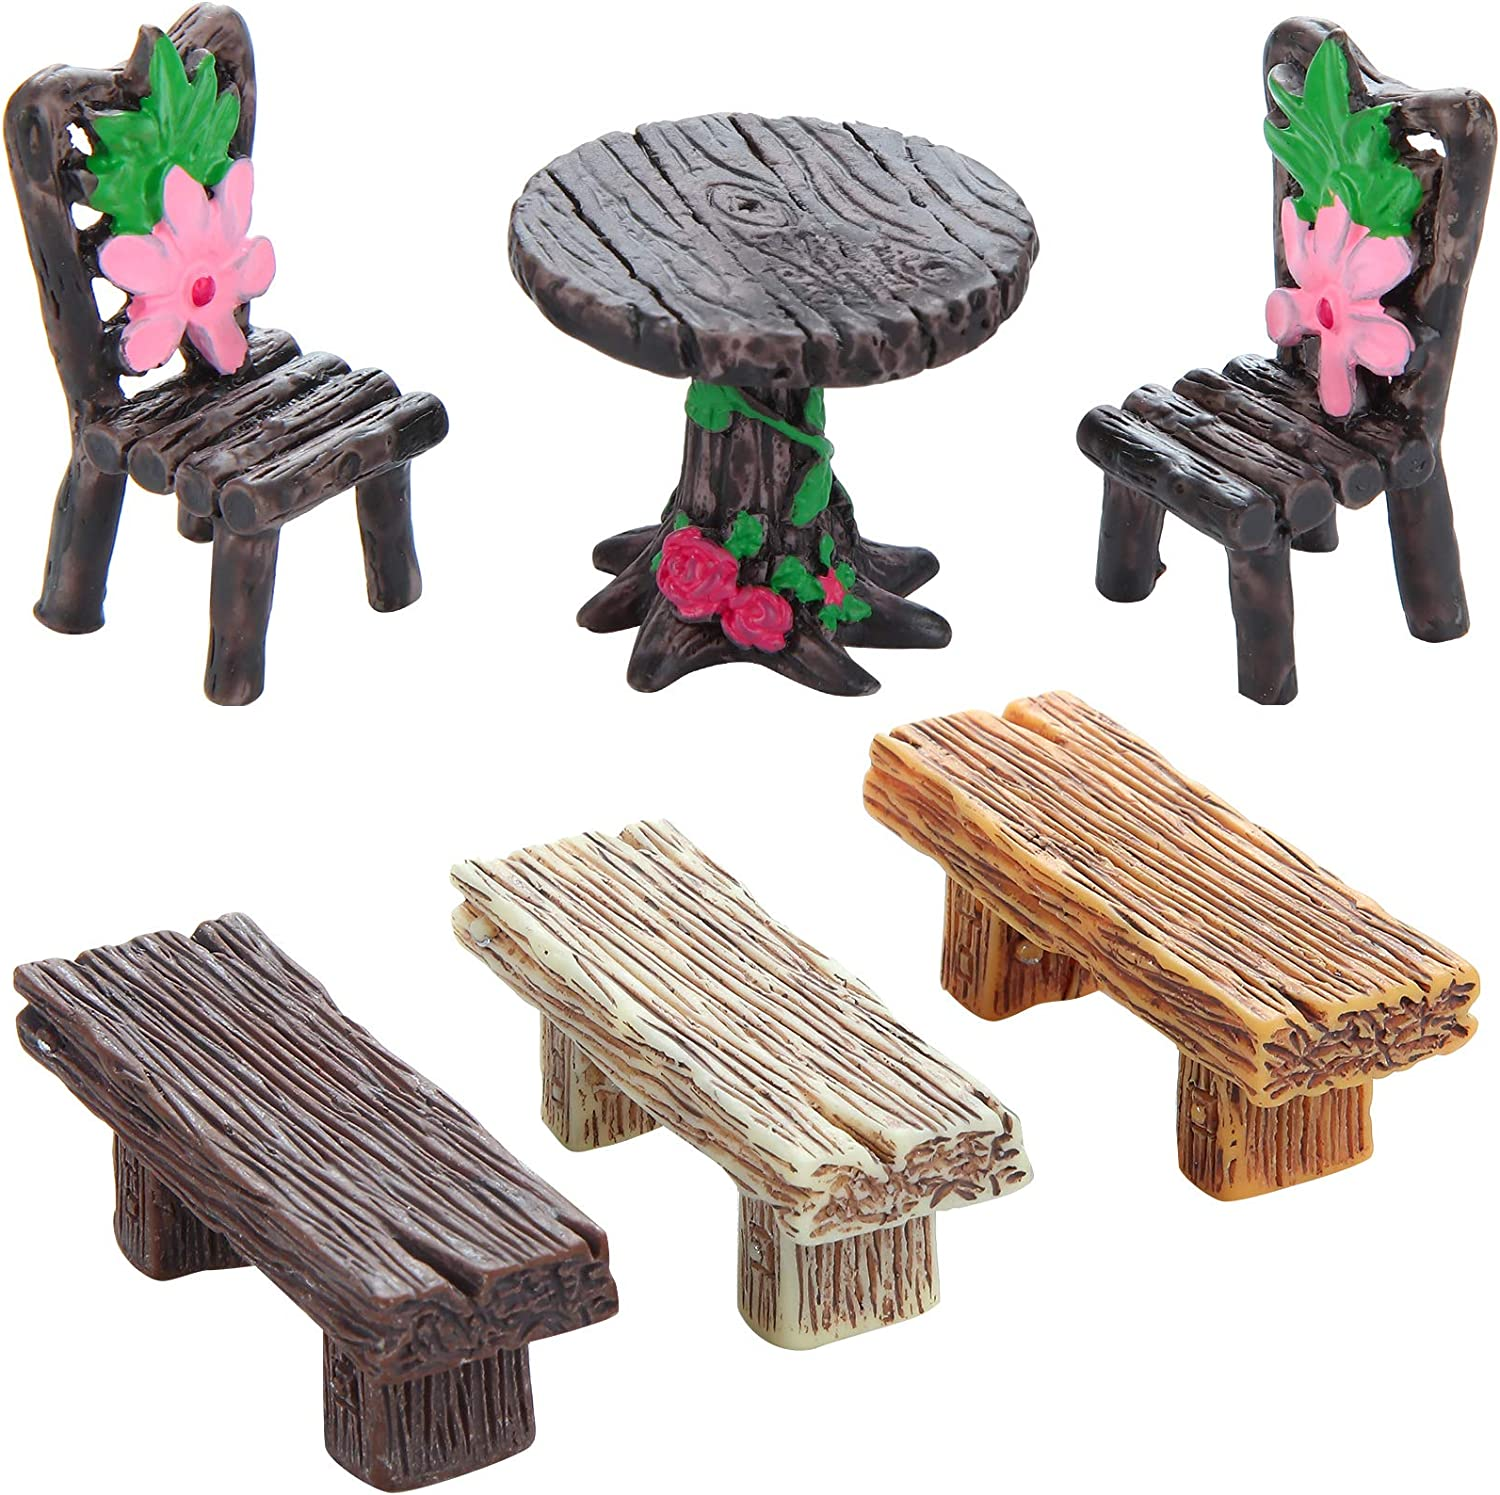 WILLBOND 6 Pieces Miniature Table and Chairs Set Retro Wooden Style Benches Miniature Ornaments White Yellow Black for Garden Flowerpot Crafts Dollhouse Fairy Decoration